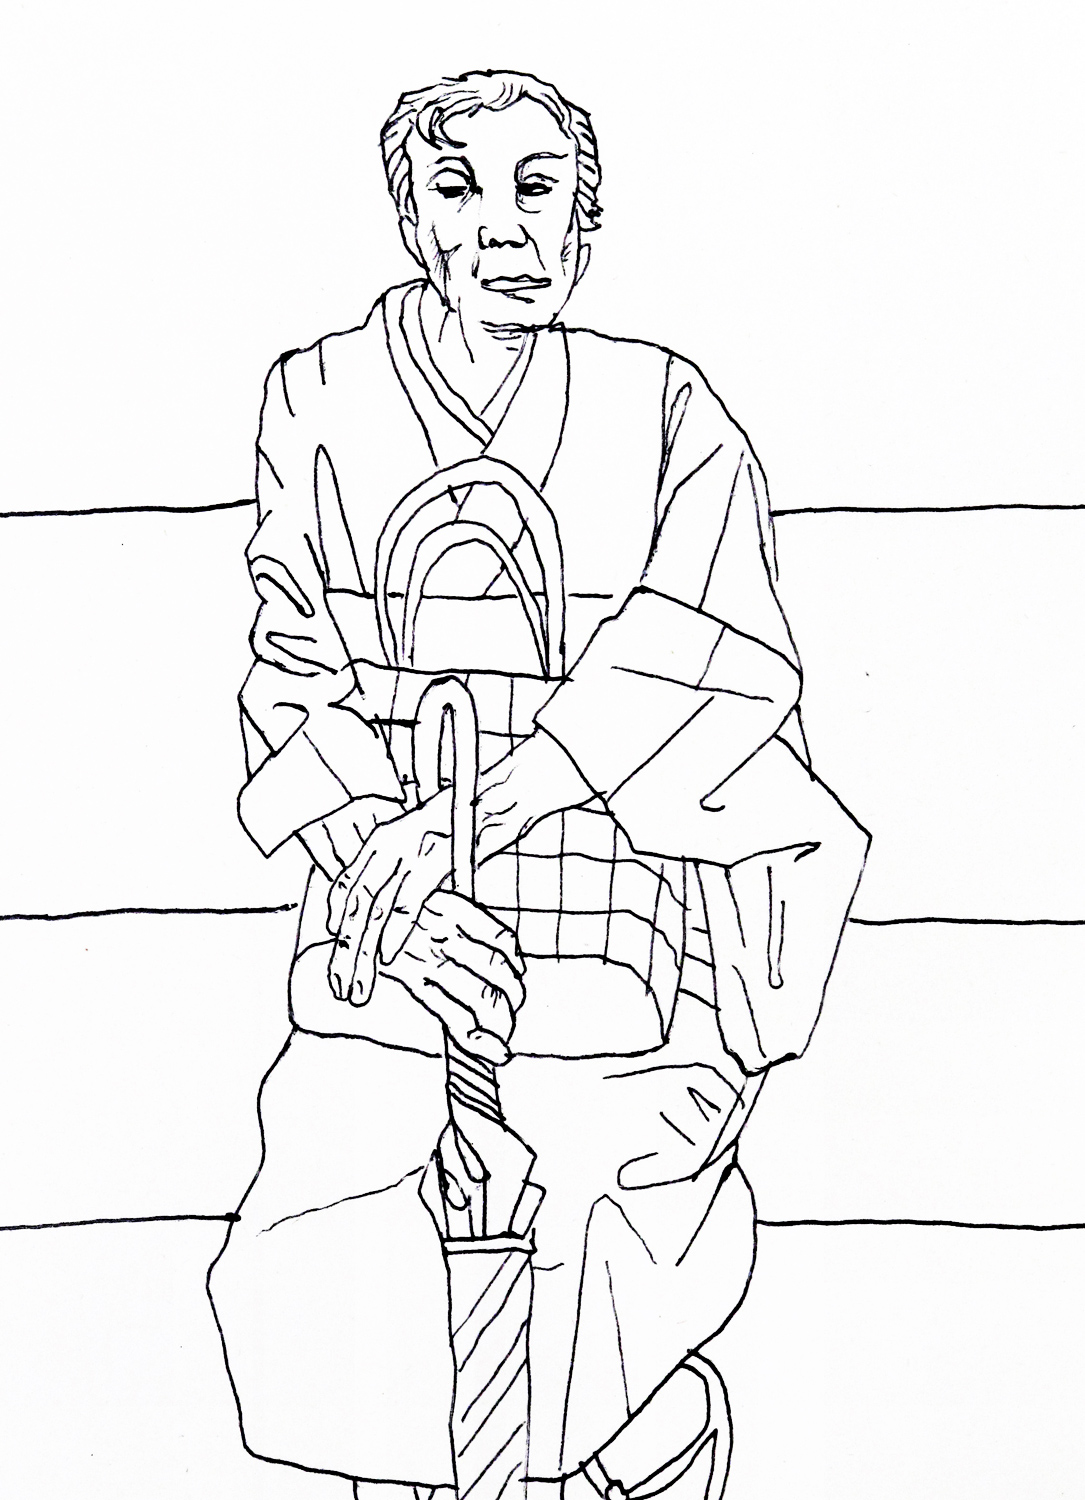 Drawings and sketches made in Japan — Carl Randall